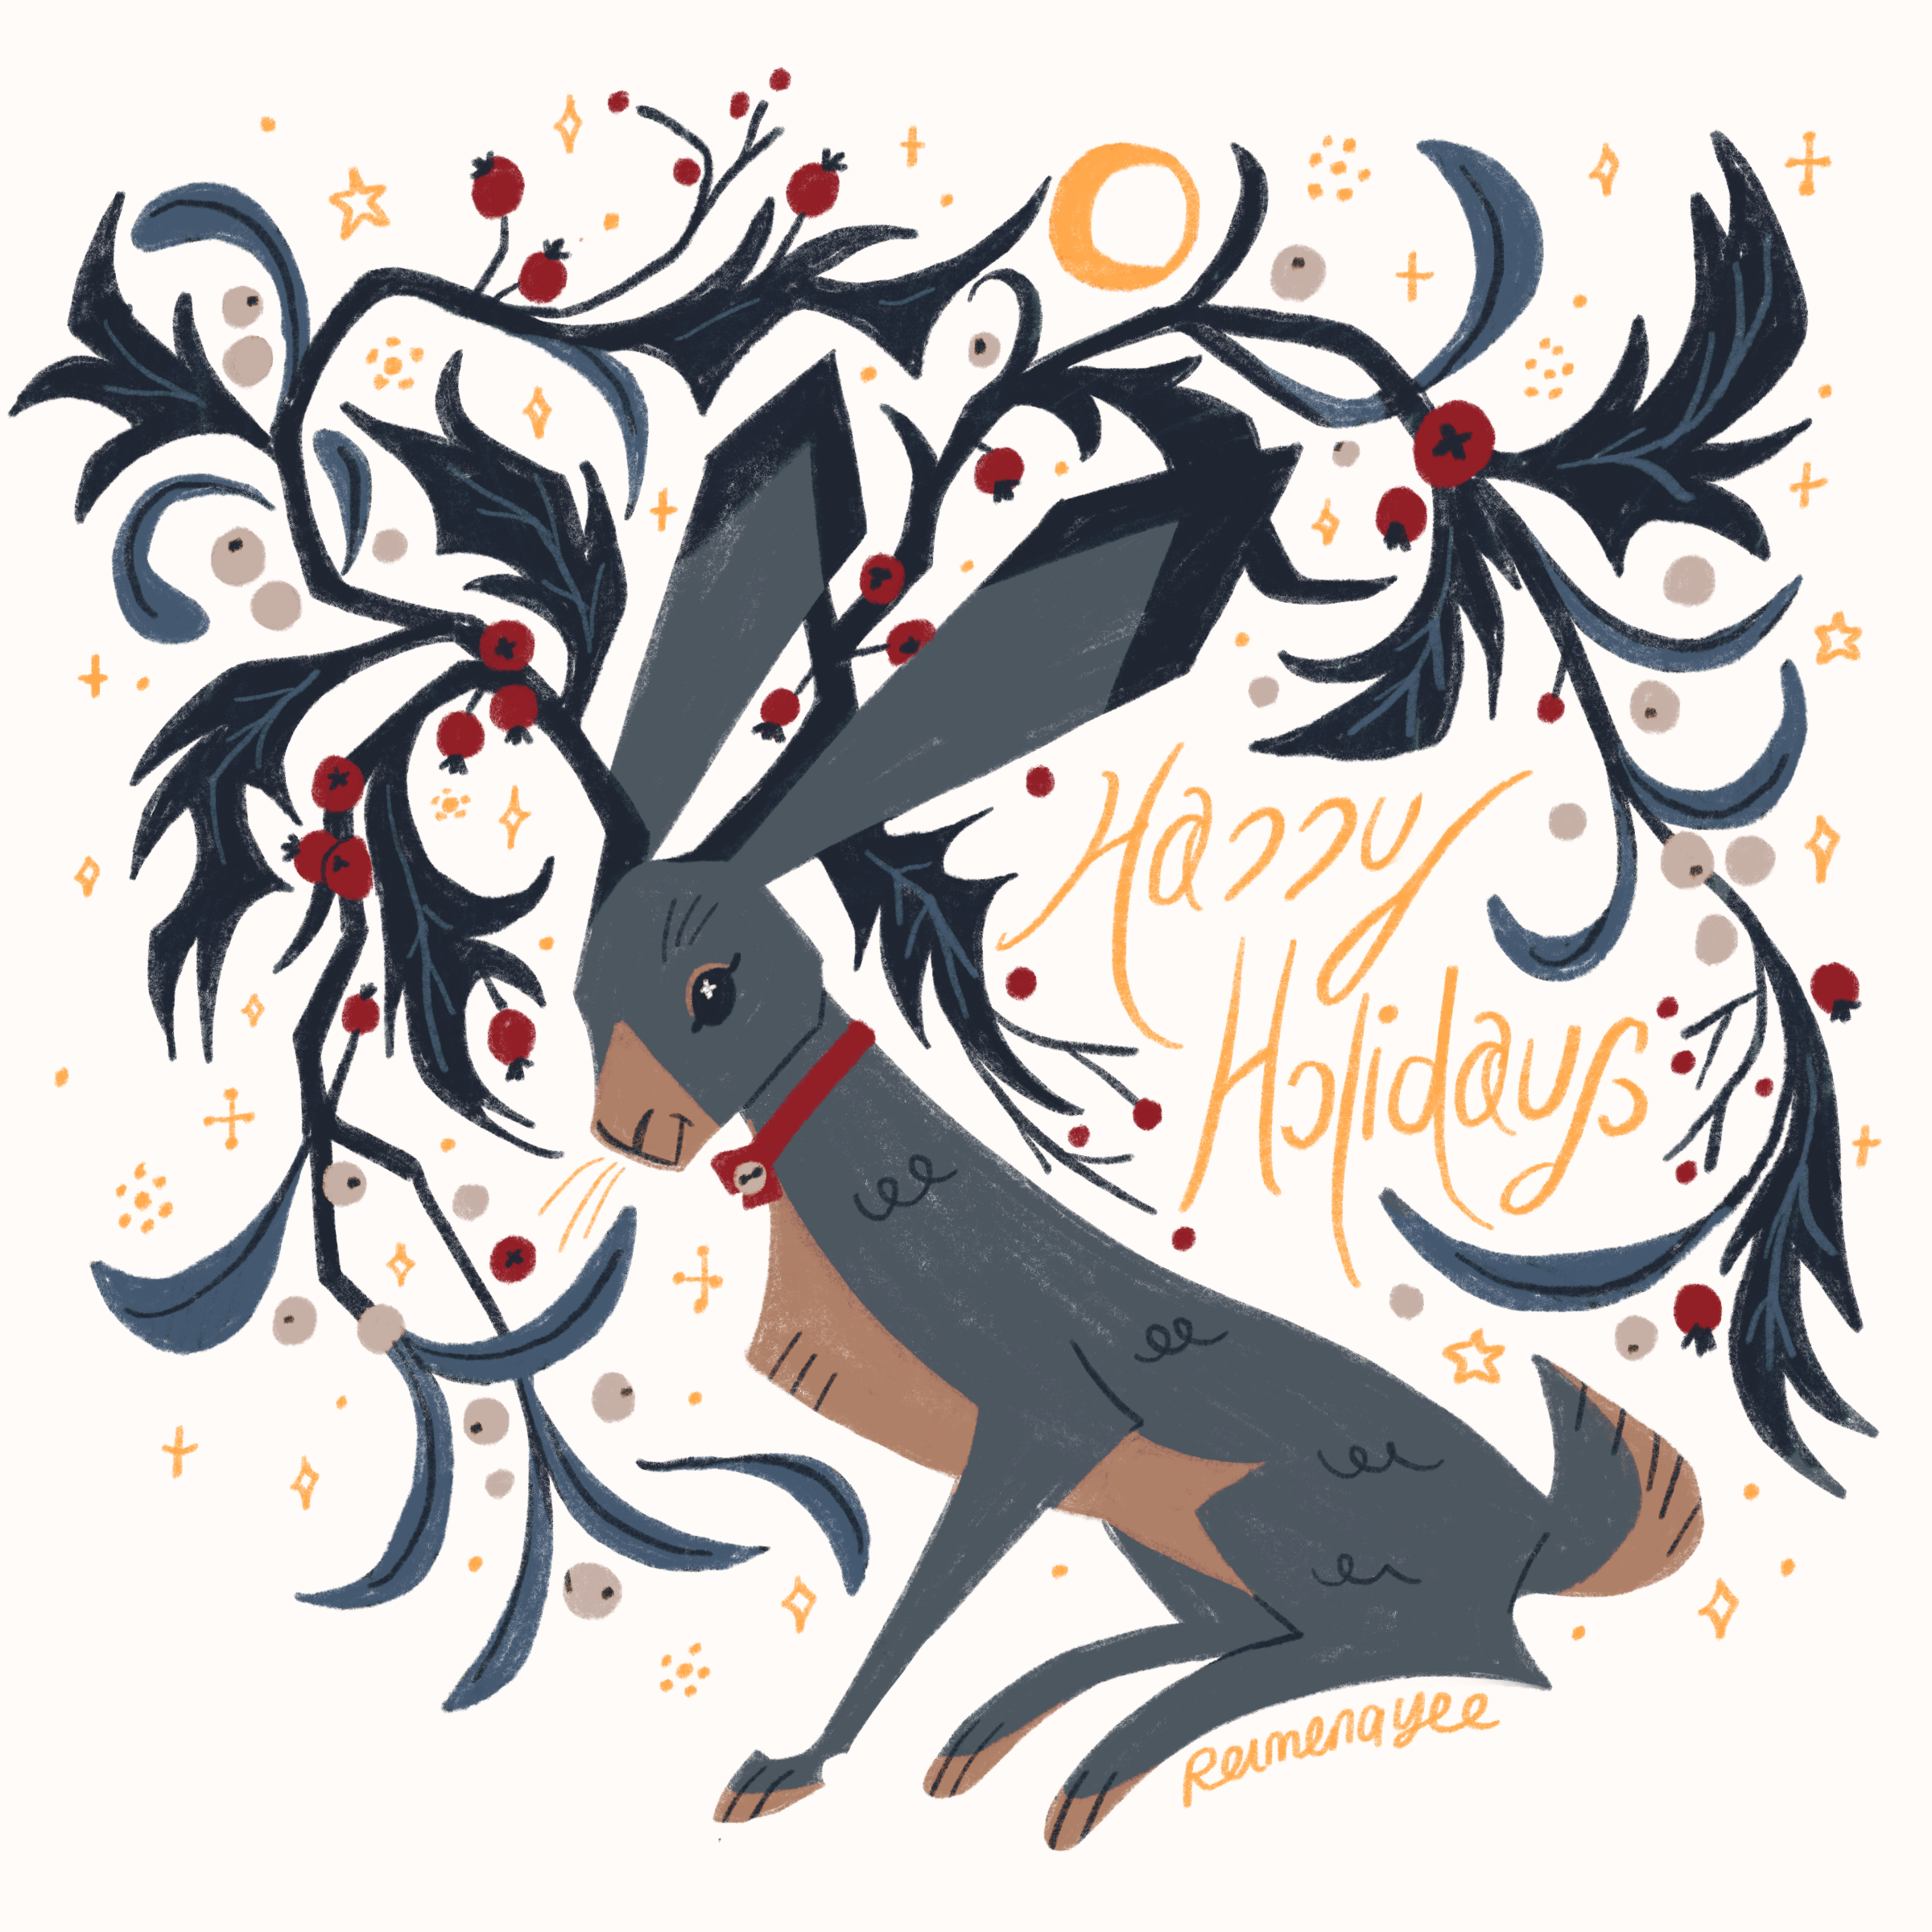 Jackrabbit with branches of mistletoe growing out of its head, with golden stars. Happy Holidays!